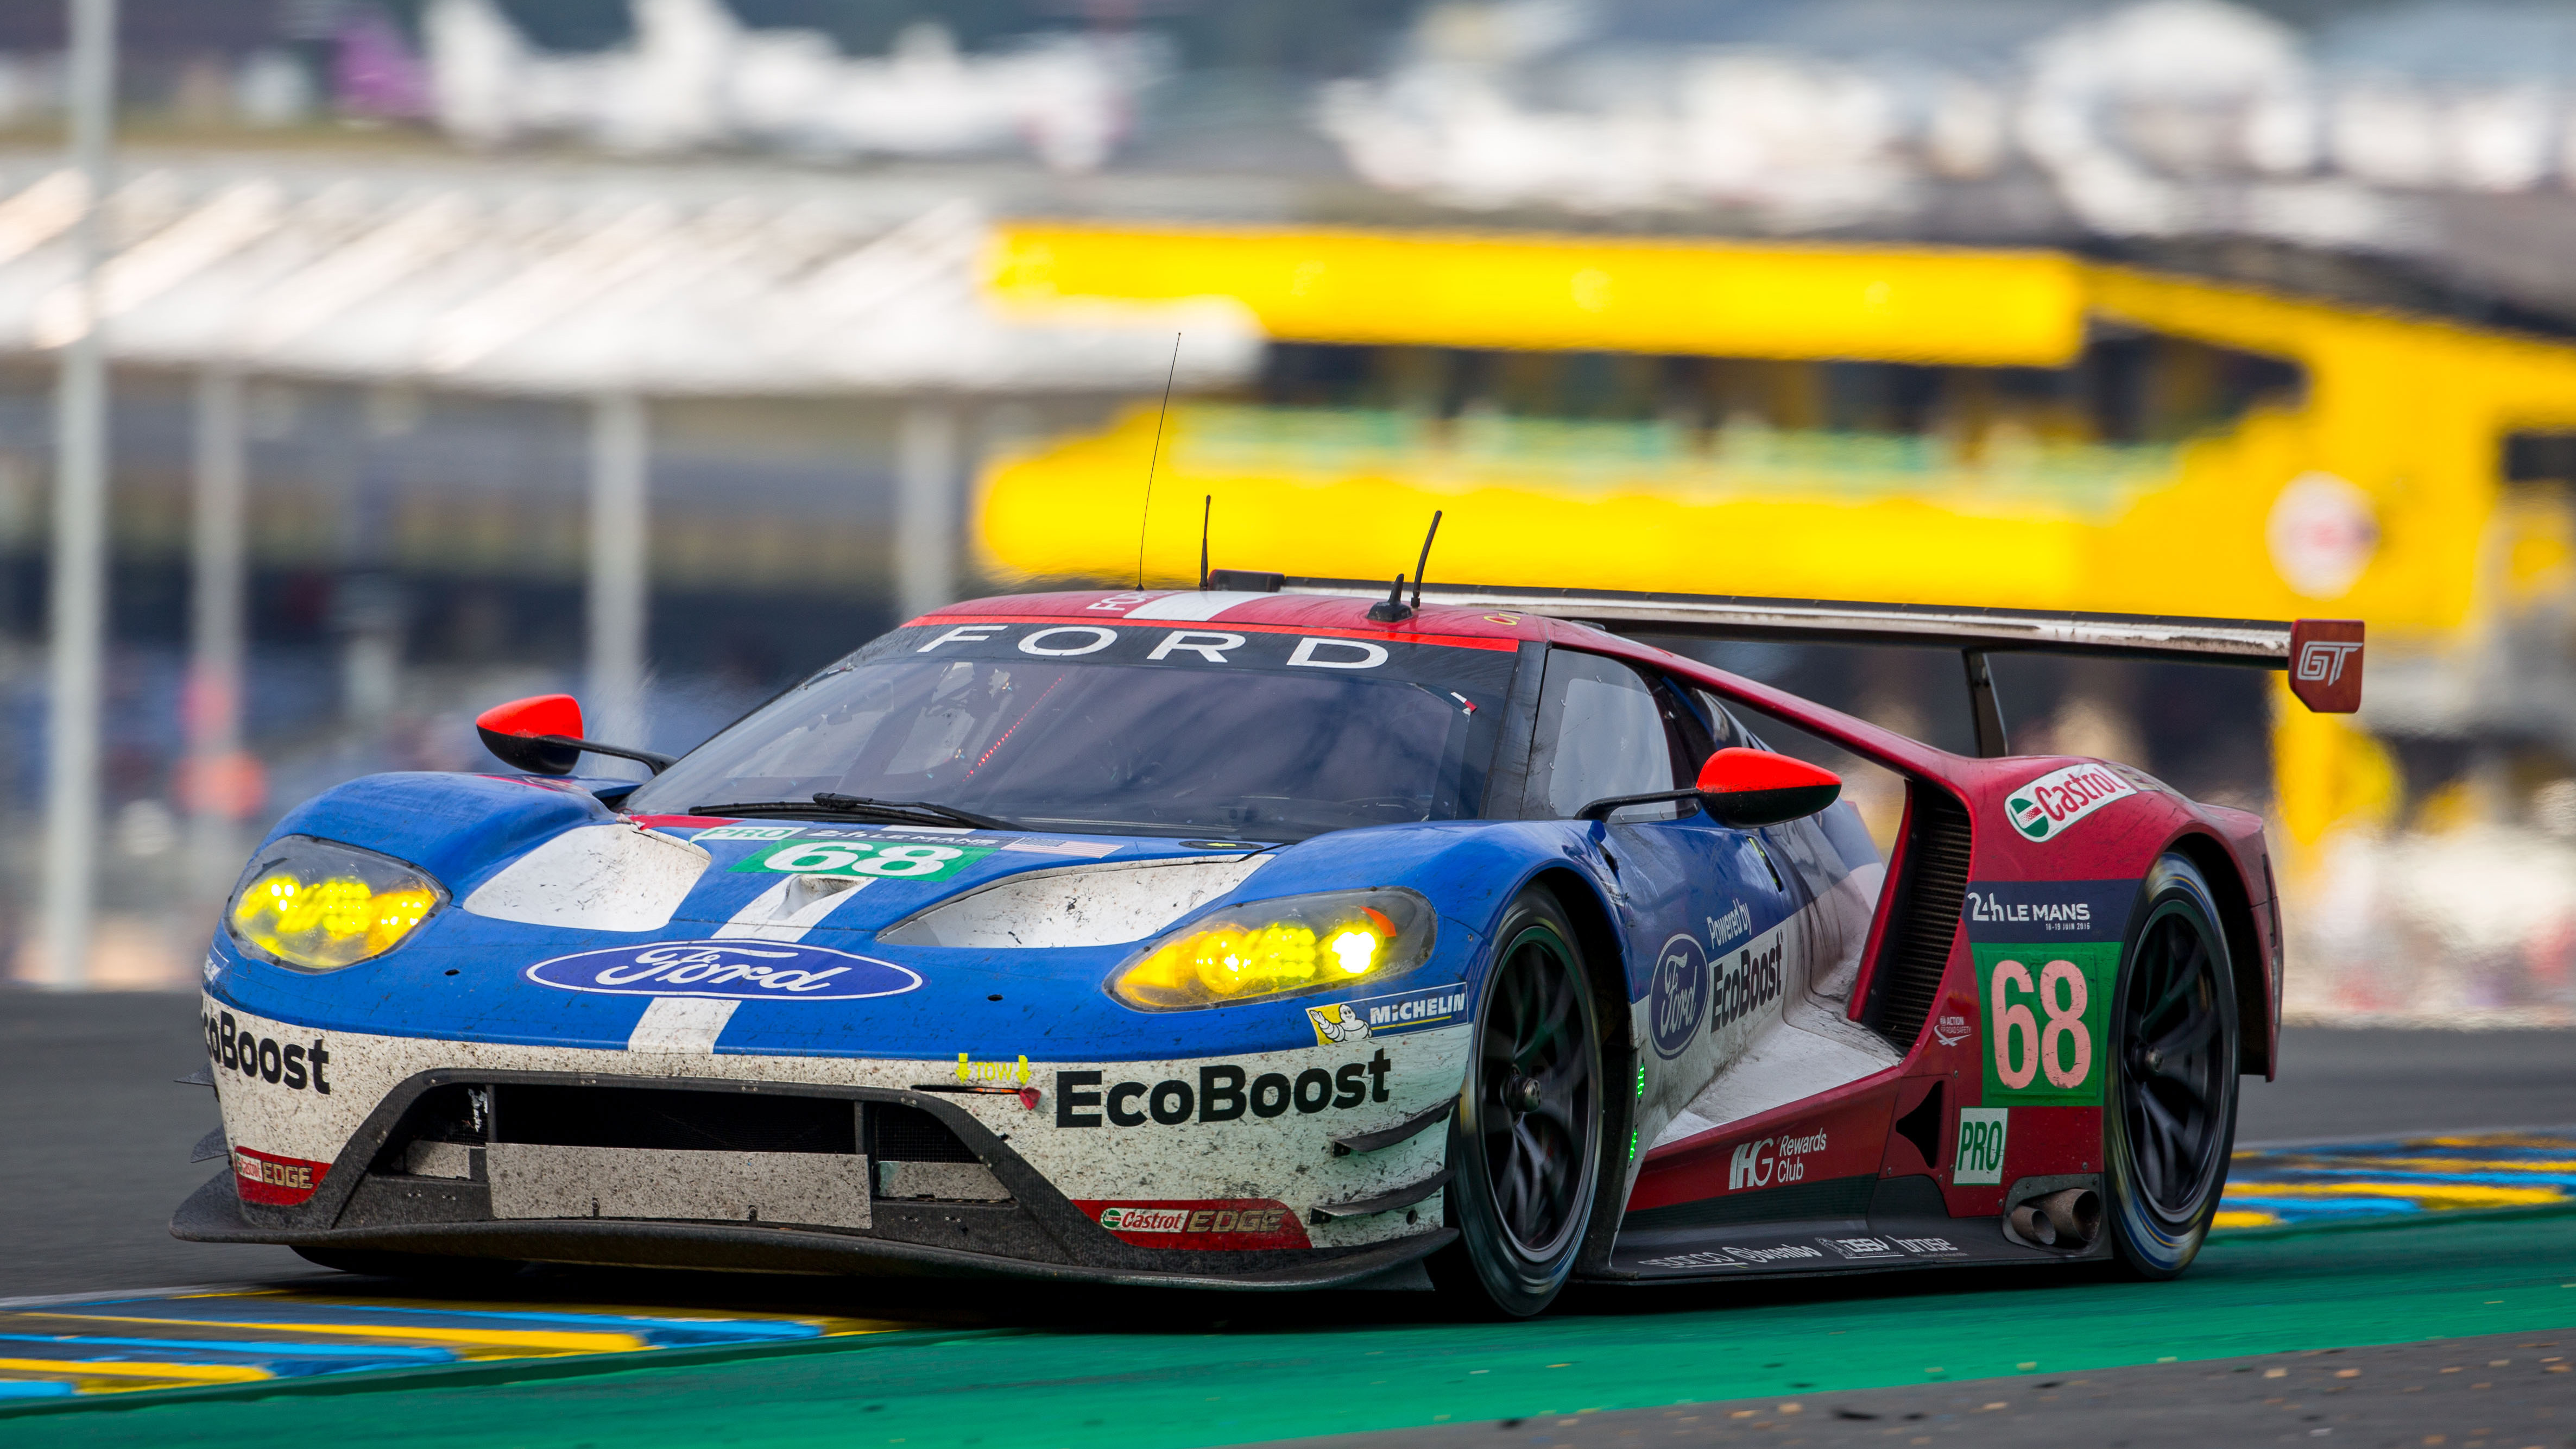 Ford GT Makes History at Le Mans | SI.com Ford Gt In Le Mans on corvette le mans, 1968 24 hours of le mans, bmw m3 le mans, 2016 audi r8 le mans, 2016 ford f-350, 2016 ford edge, 2016 bmw m4 le mans, 2016 ford mustang, 2016 honda nsx le mans, porsche le mans, 2016 ford gt40, ferrari 512 le mans, bentley le mans, 2016 ford raptor wallpaper hd, 1983 moto guzzi le mans,